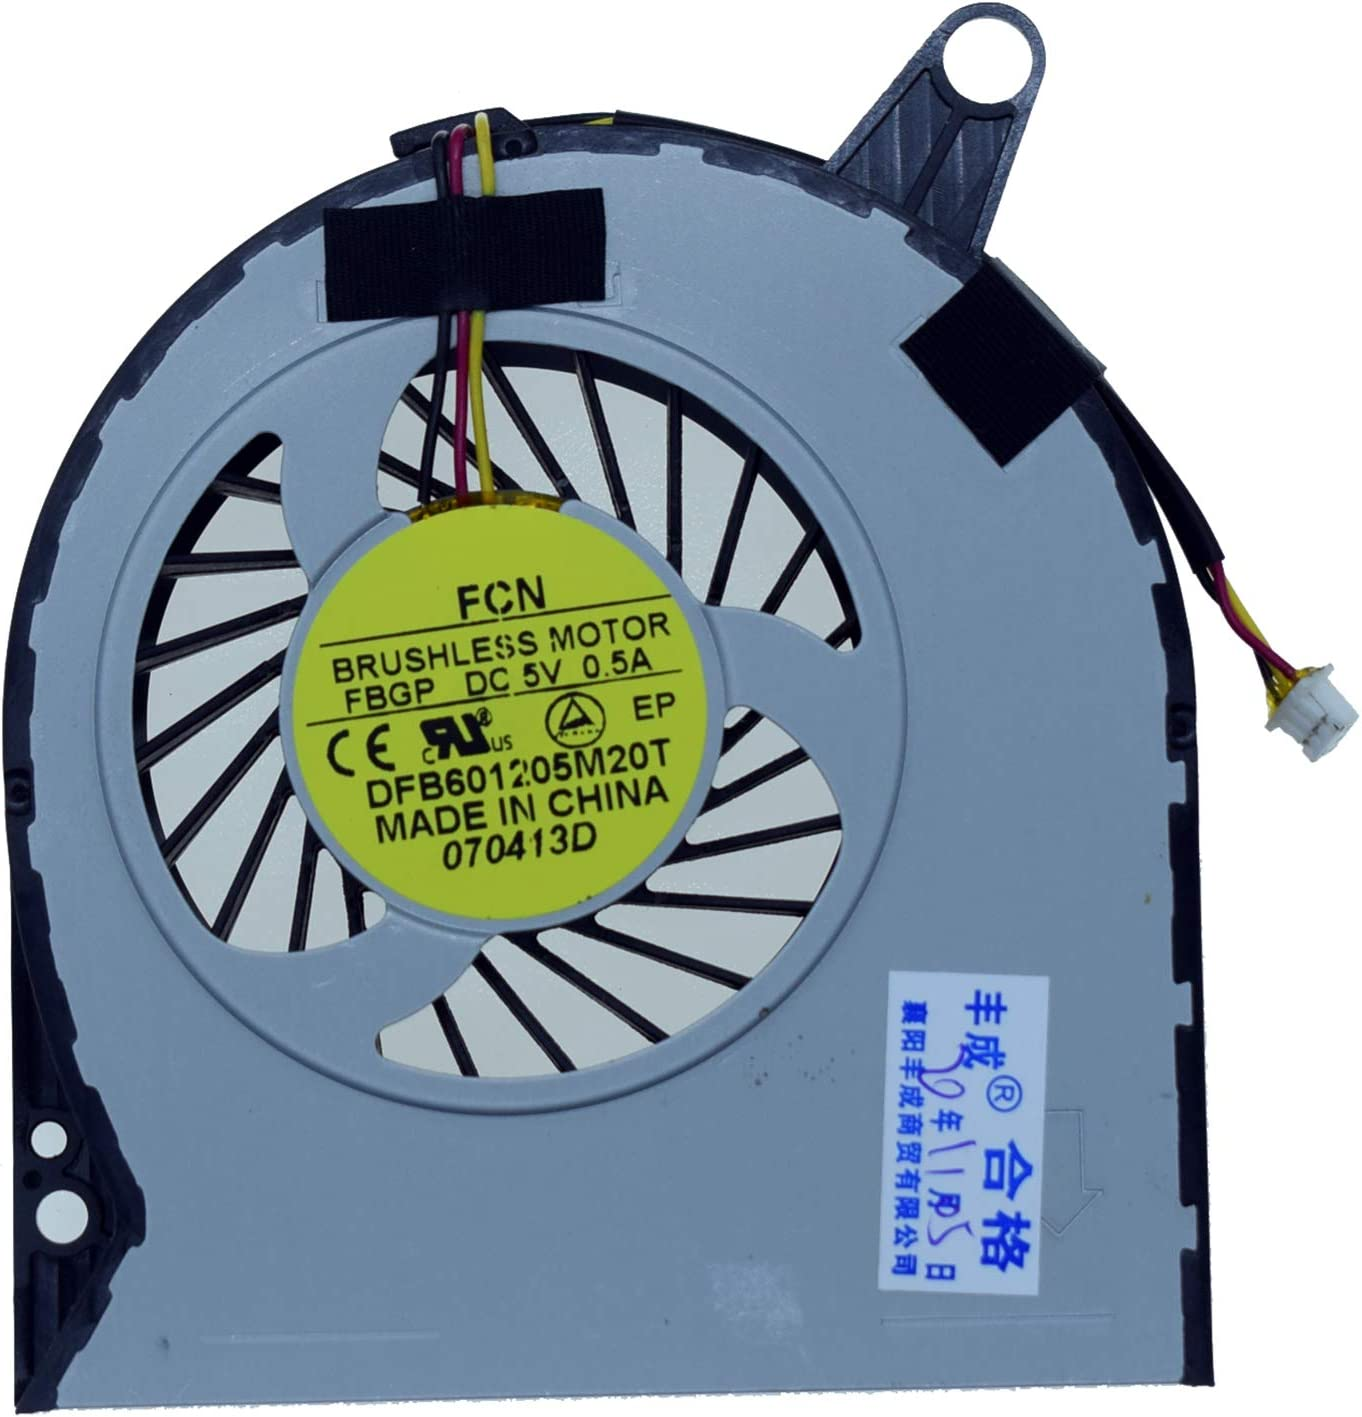 Rangale Replacement CPU Cooling Fan for Acer Aspire V3-731 V3-731G V3-771 V3-771G V3-772 V3-772G Series Laptop DFB601205M20T FBGP